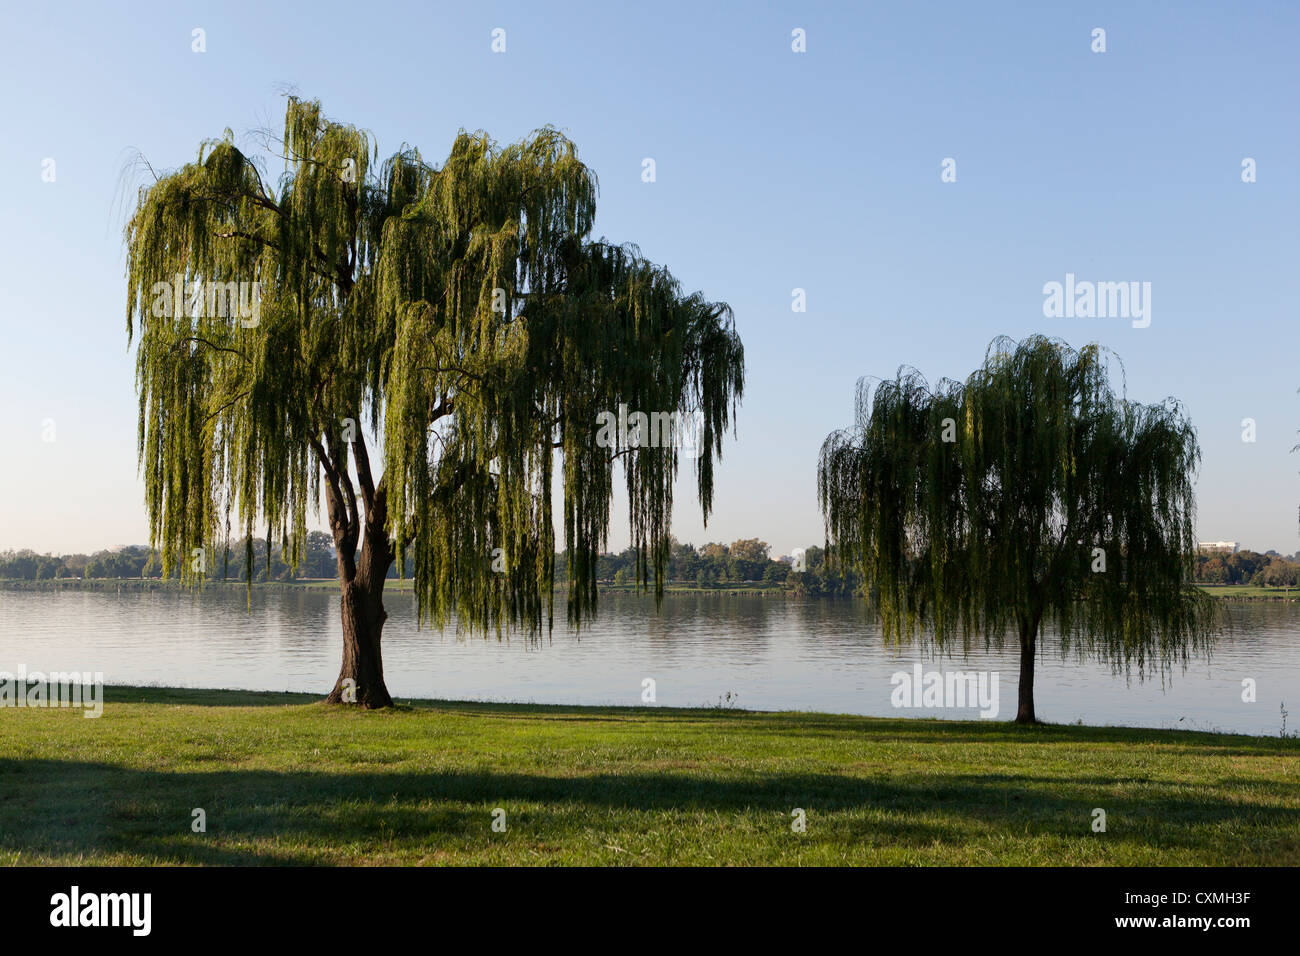 Willow trees on riverbank - Stock Image